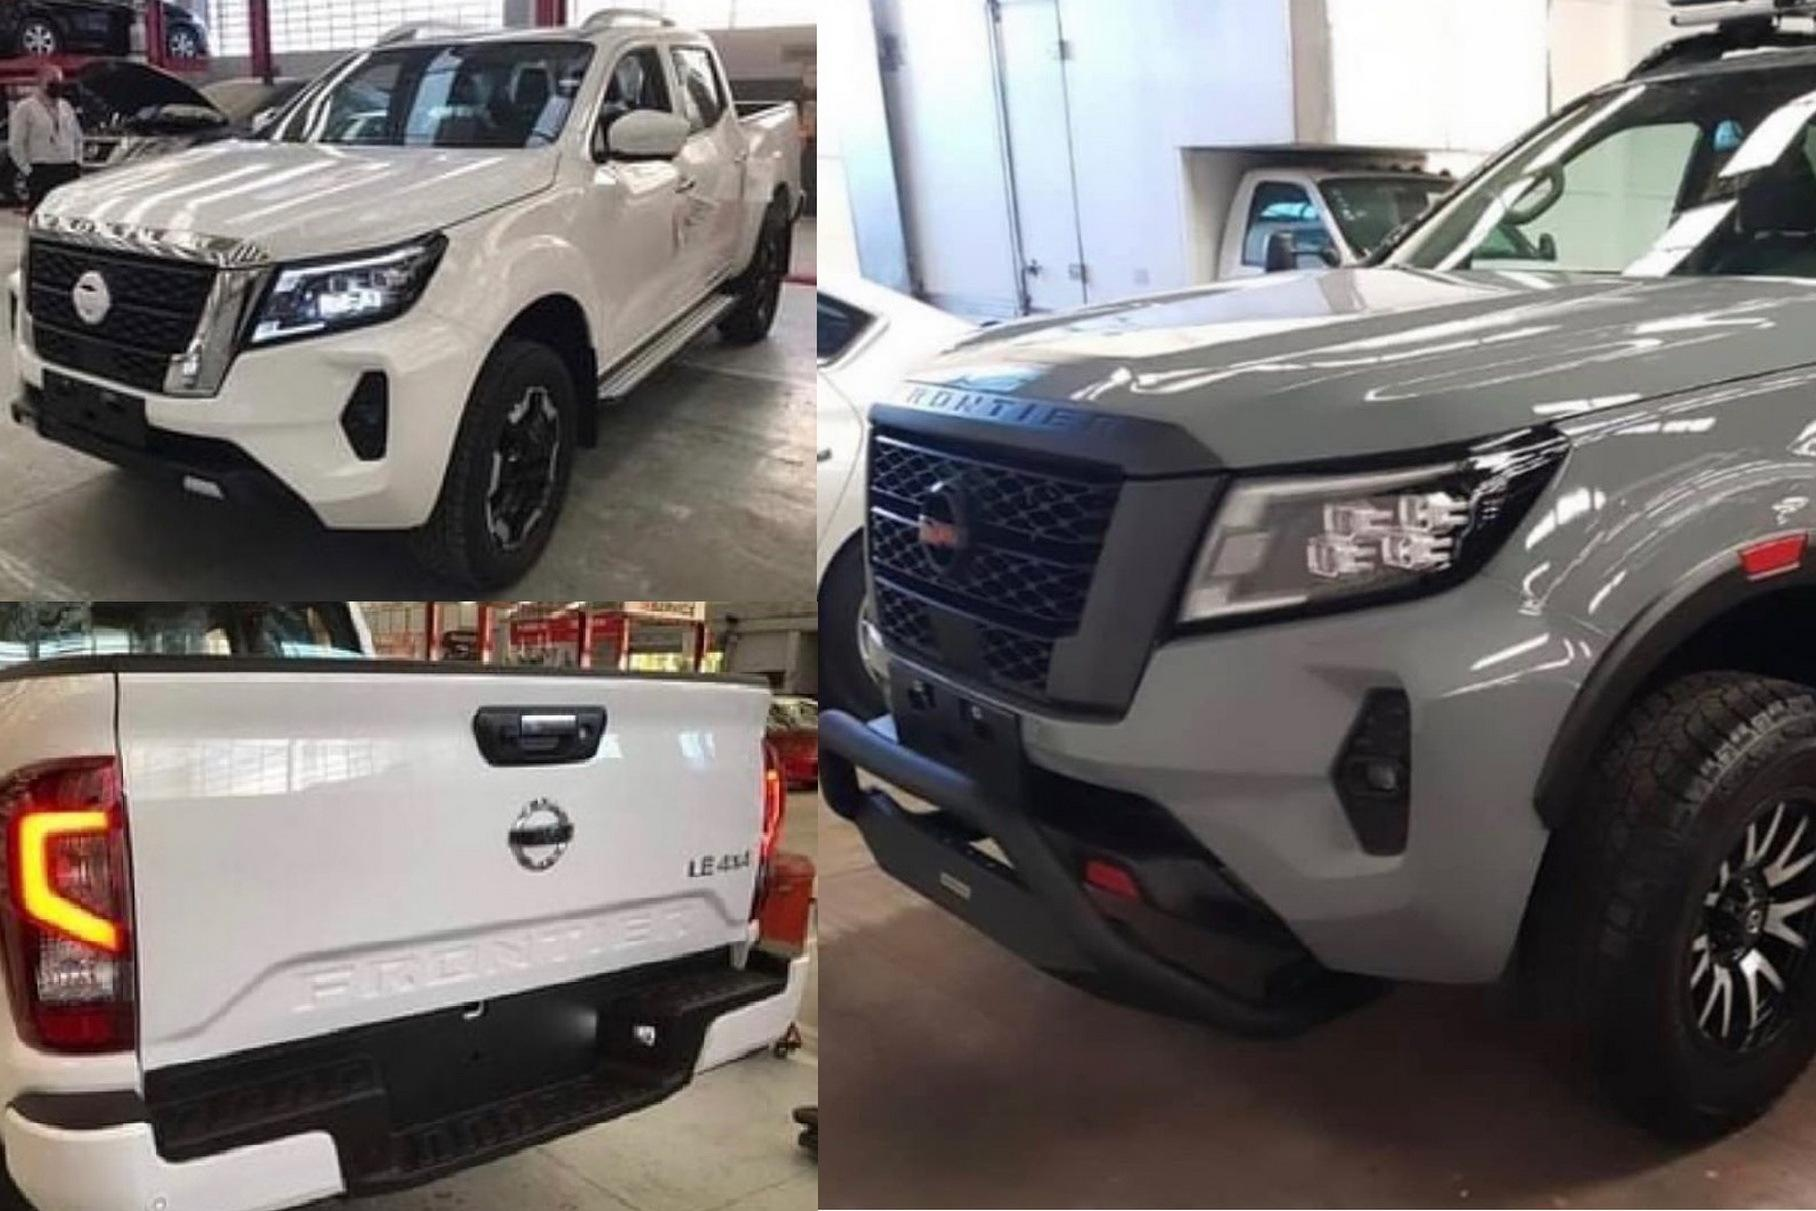 The latest spy shots depict what looks suspiciously like a refreshed production version of the Nissan Navara pickup, also known as the Frontier on some markets. Care to get a closer look?